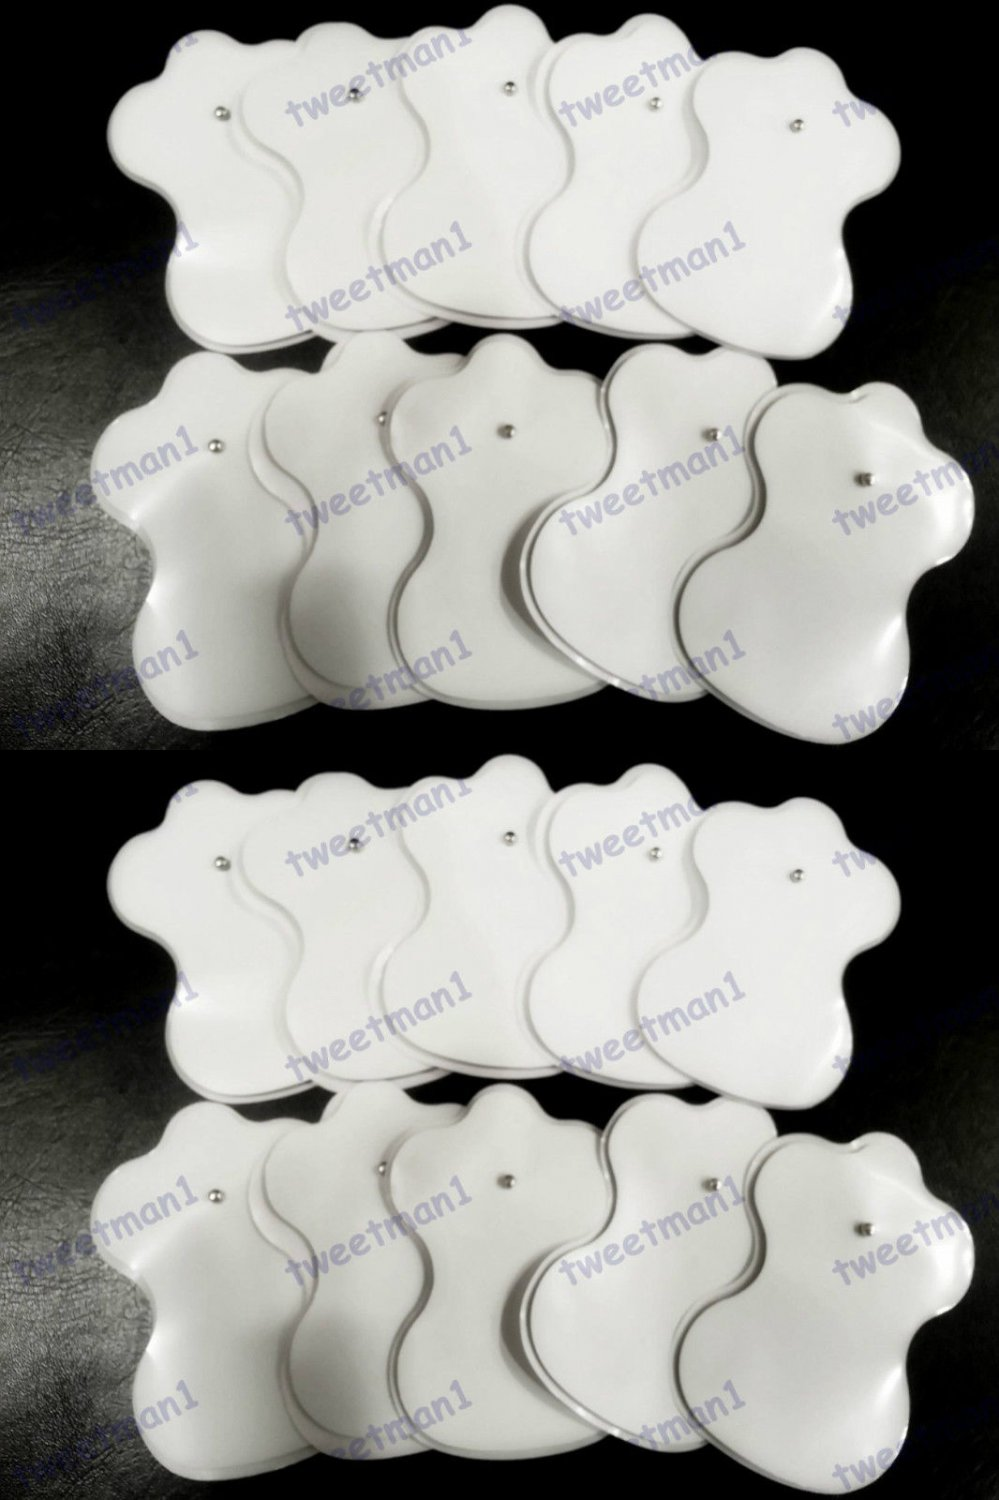 `Electrode Pads for Digital Massage (20) /TENS/Electronic Physiotherapy /Snap-on